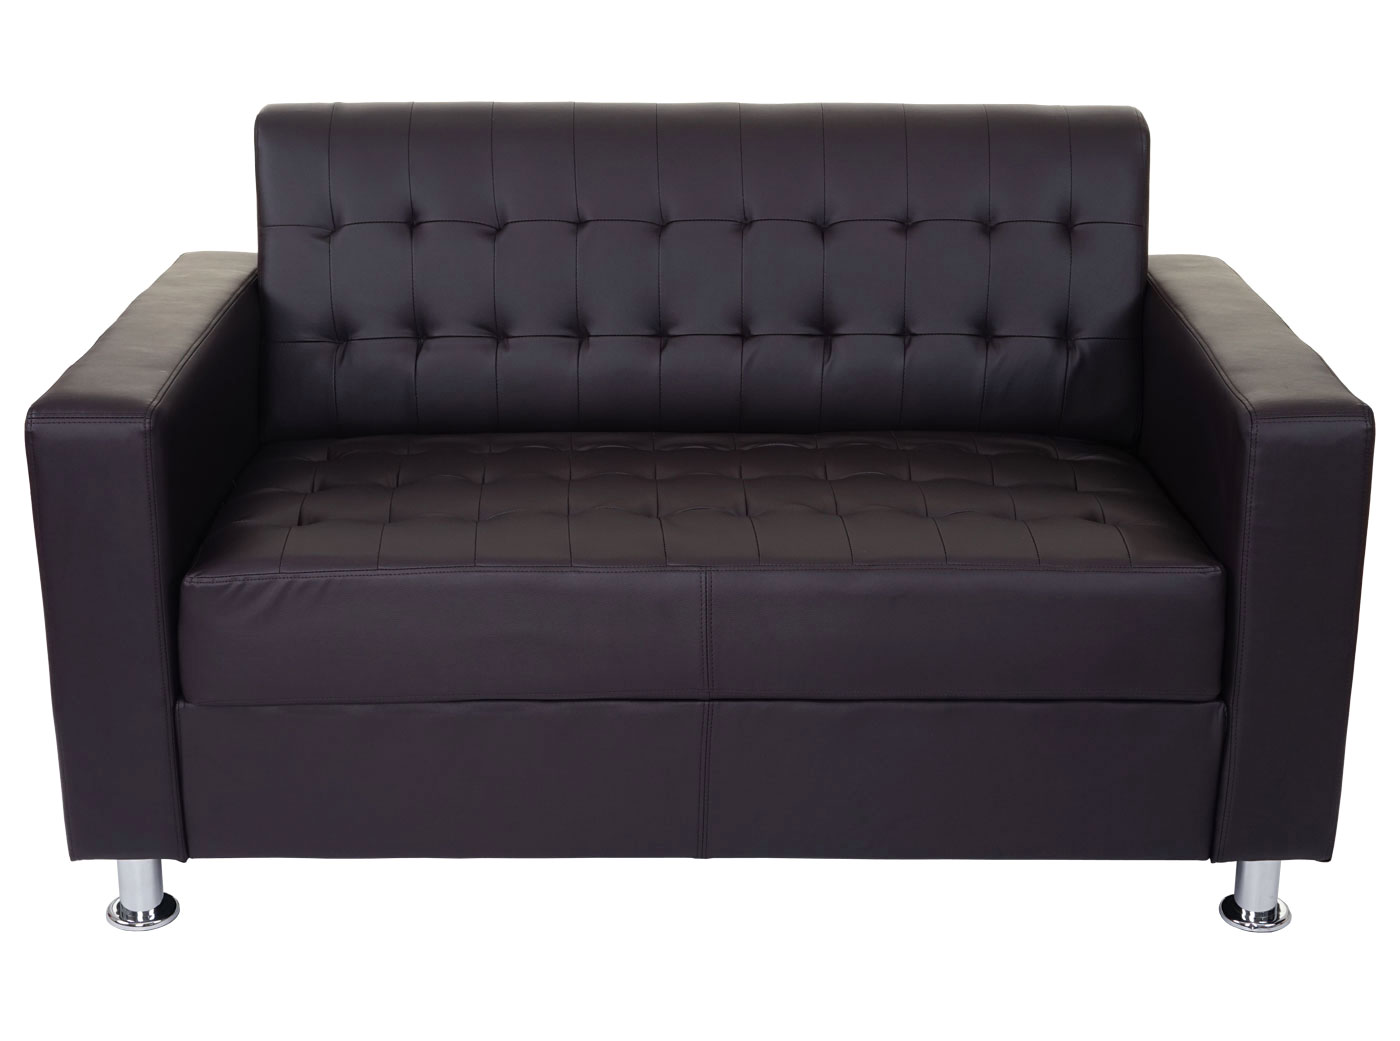 3 2 1 sofagarnitur kunda couch loungesofa kunstleder metall f e ebay. Black Bedroom Furniture Sets. Home Design Ideas